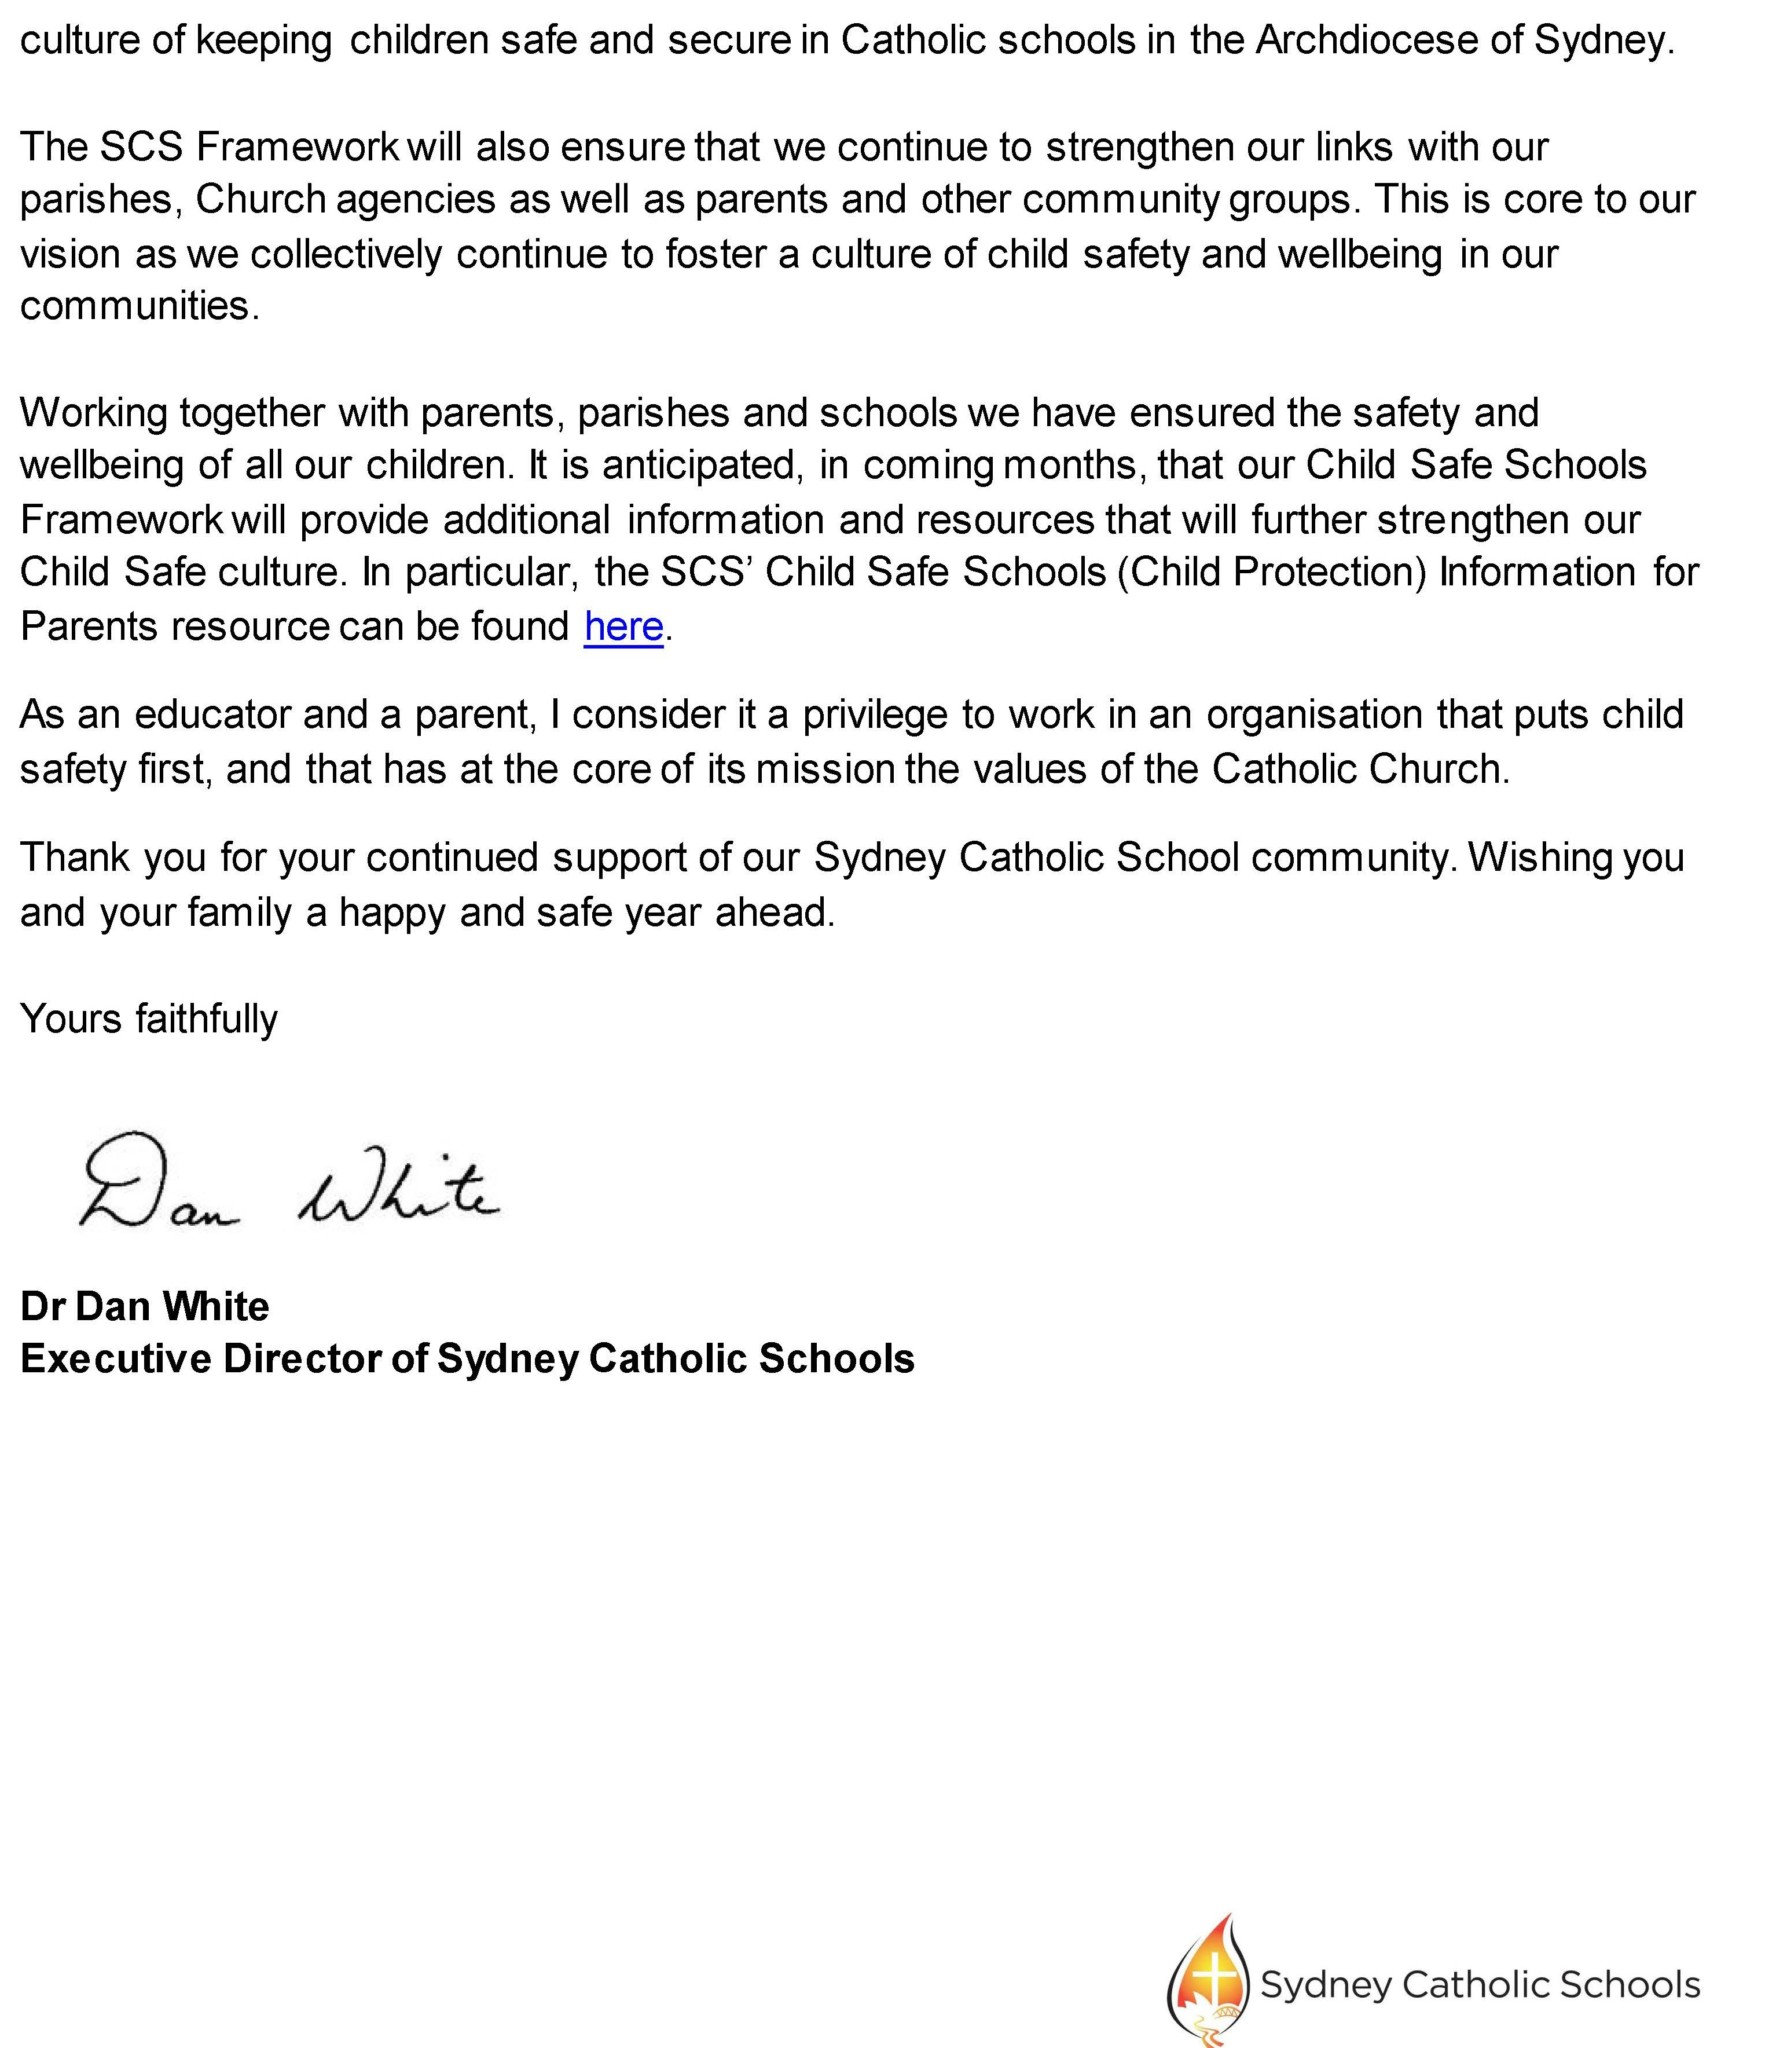 letter-from-dr-dan-white_page_2